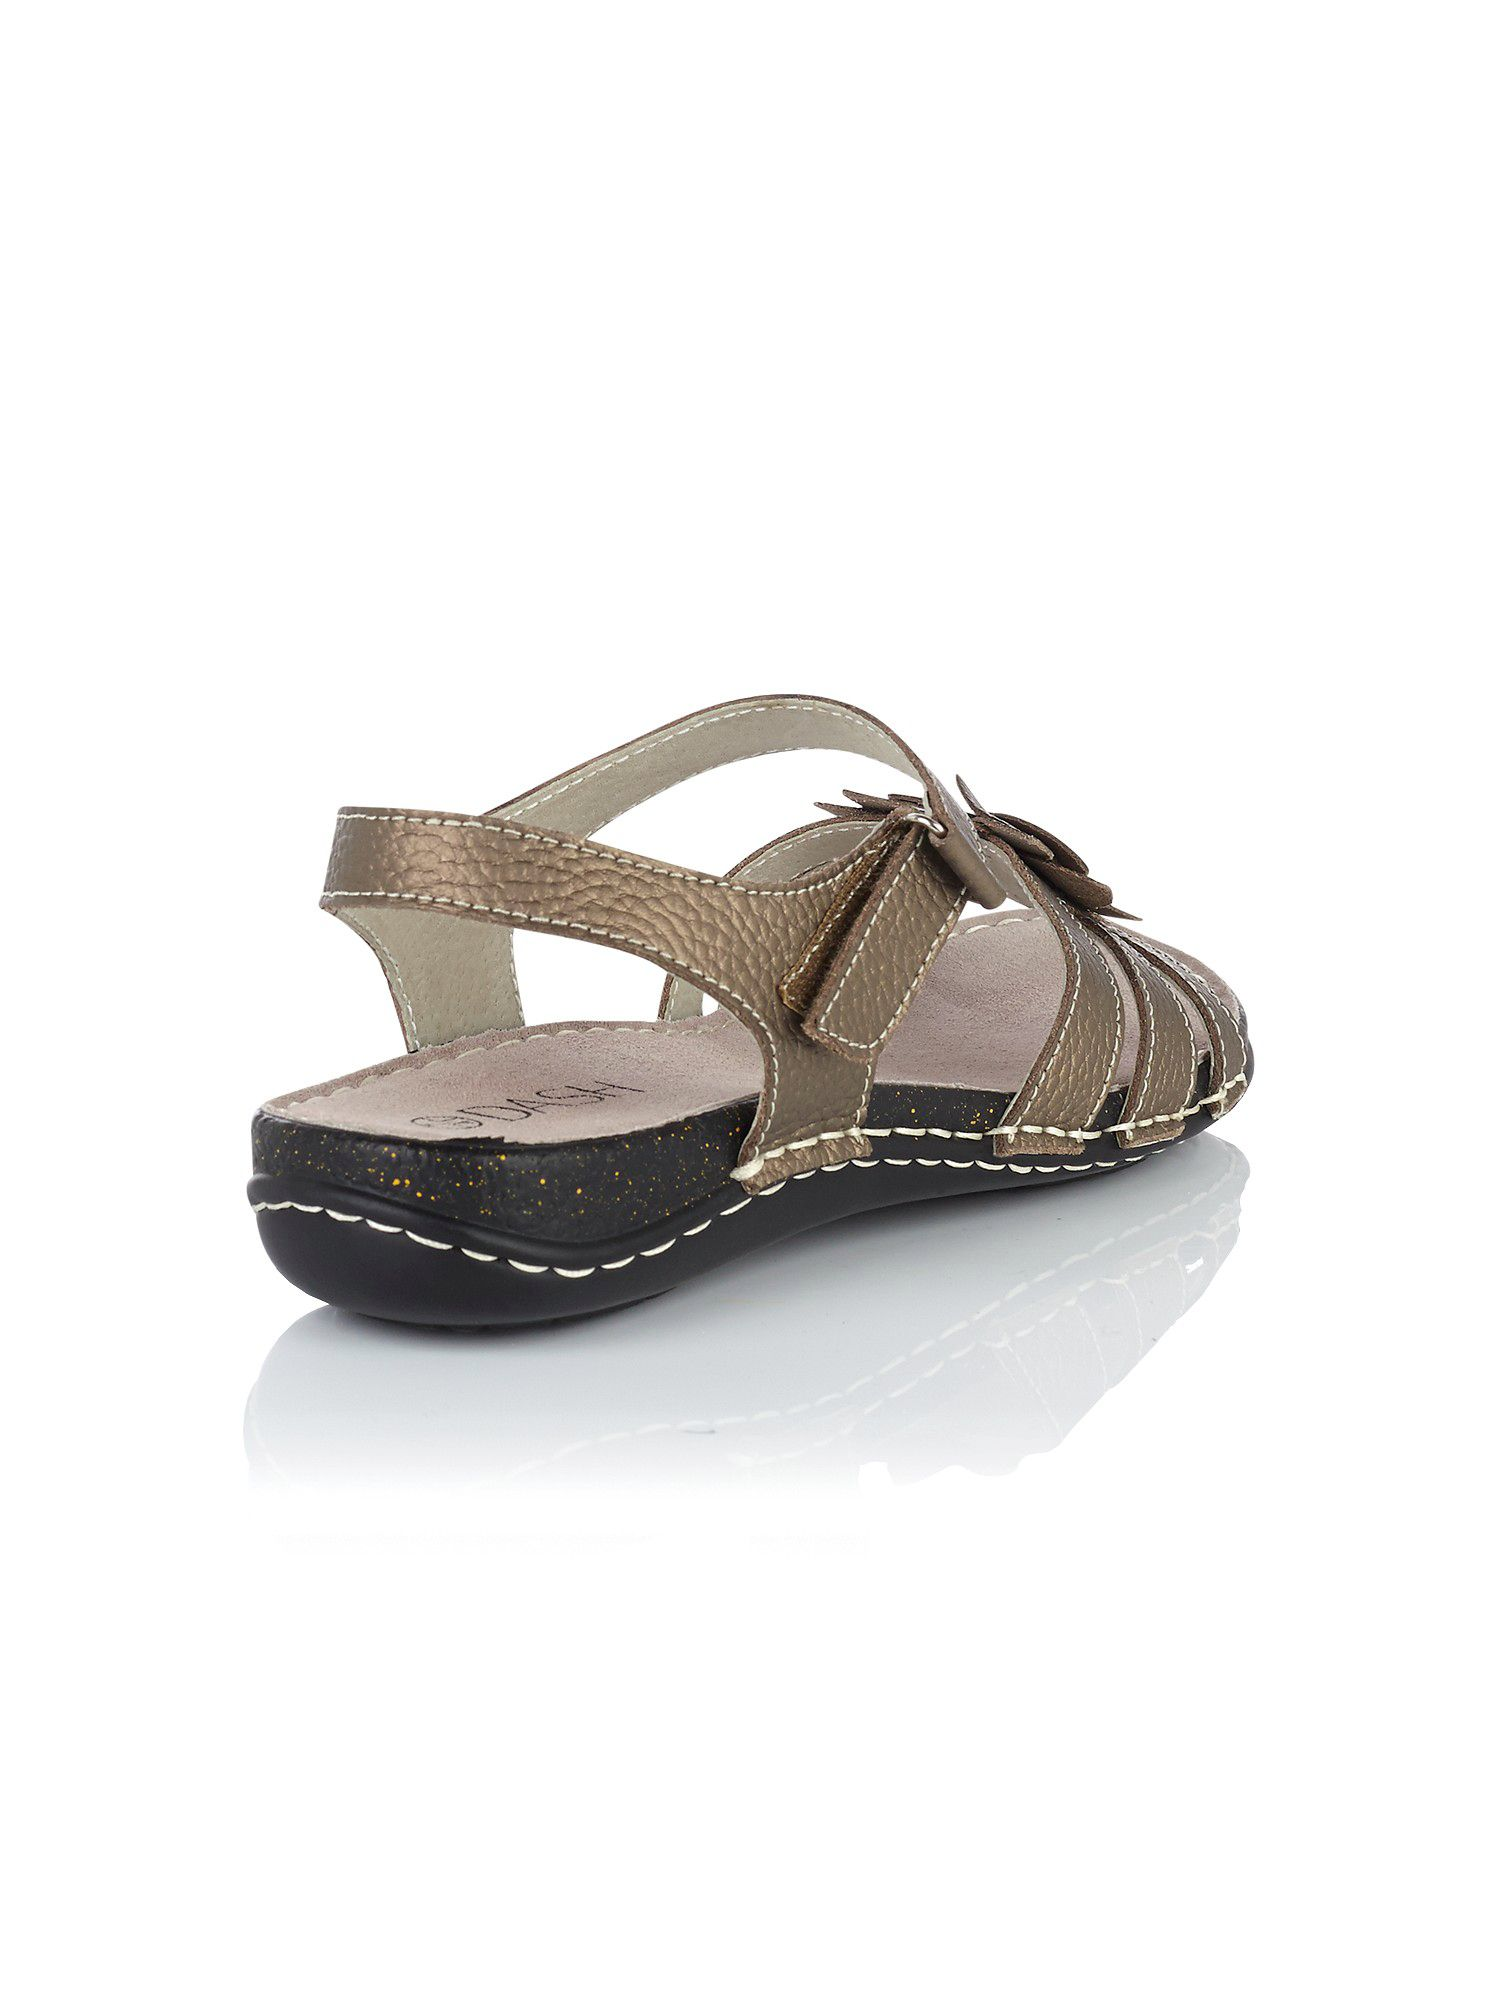 Pewter flower sandals